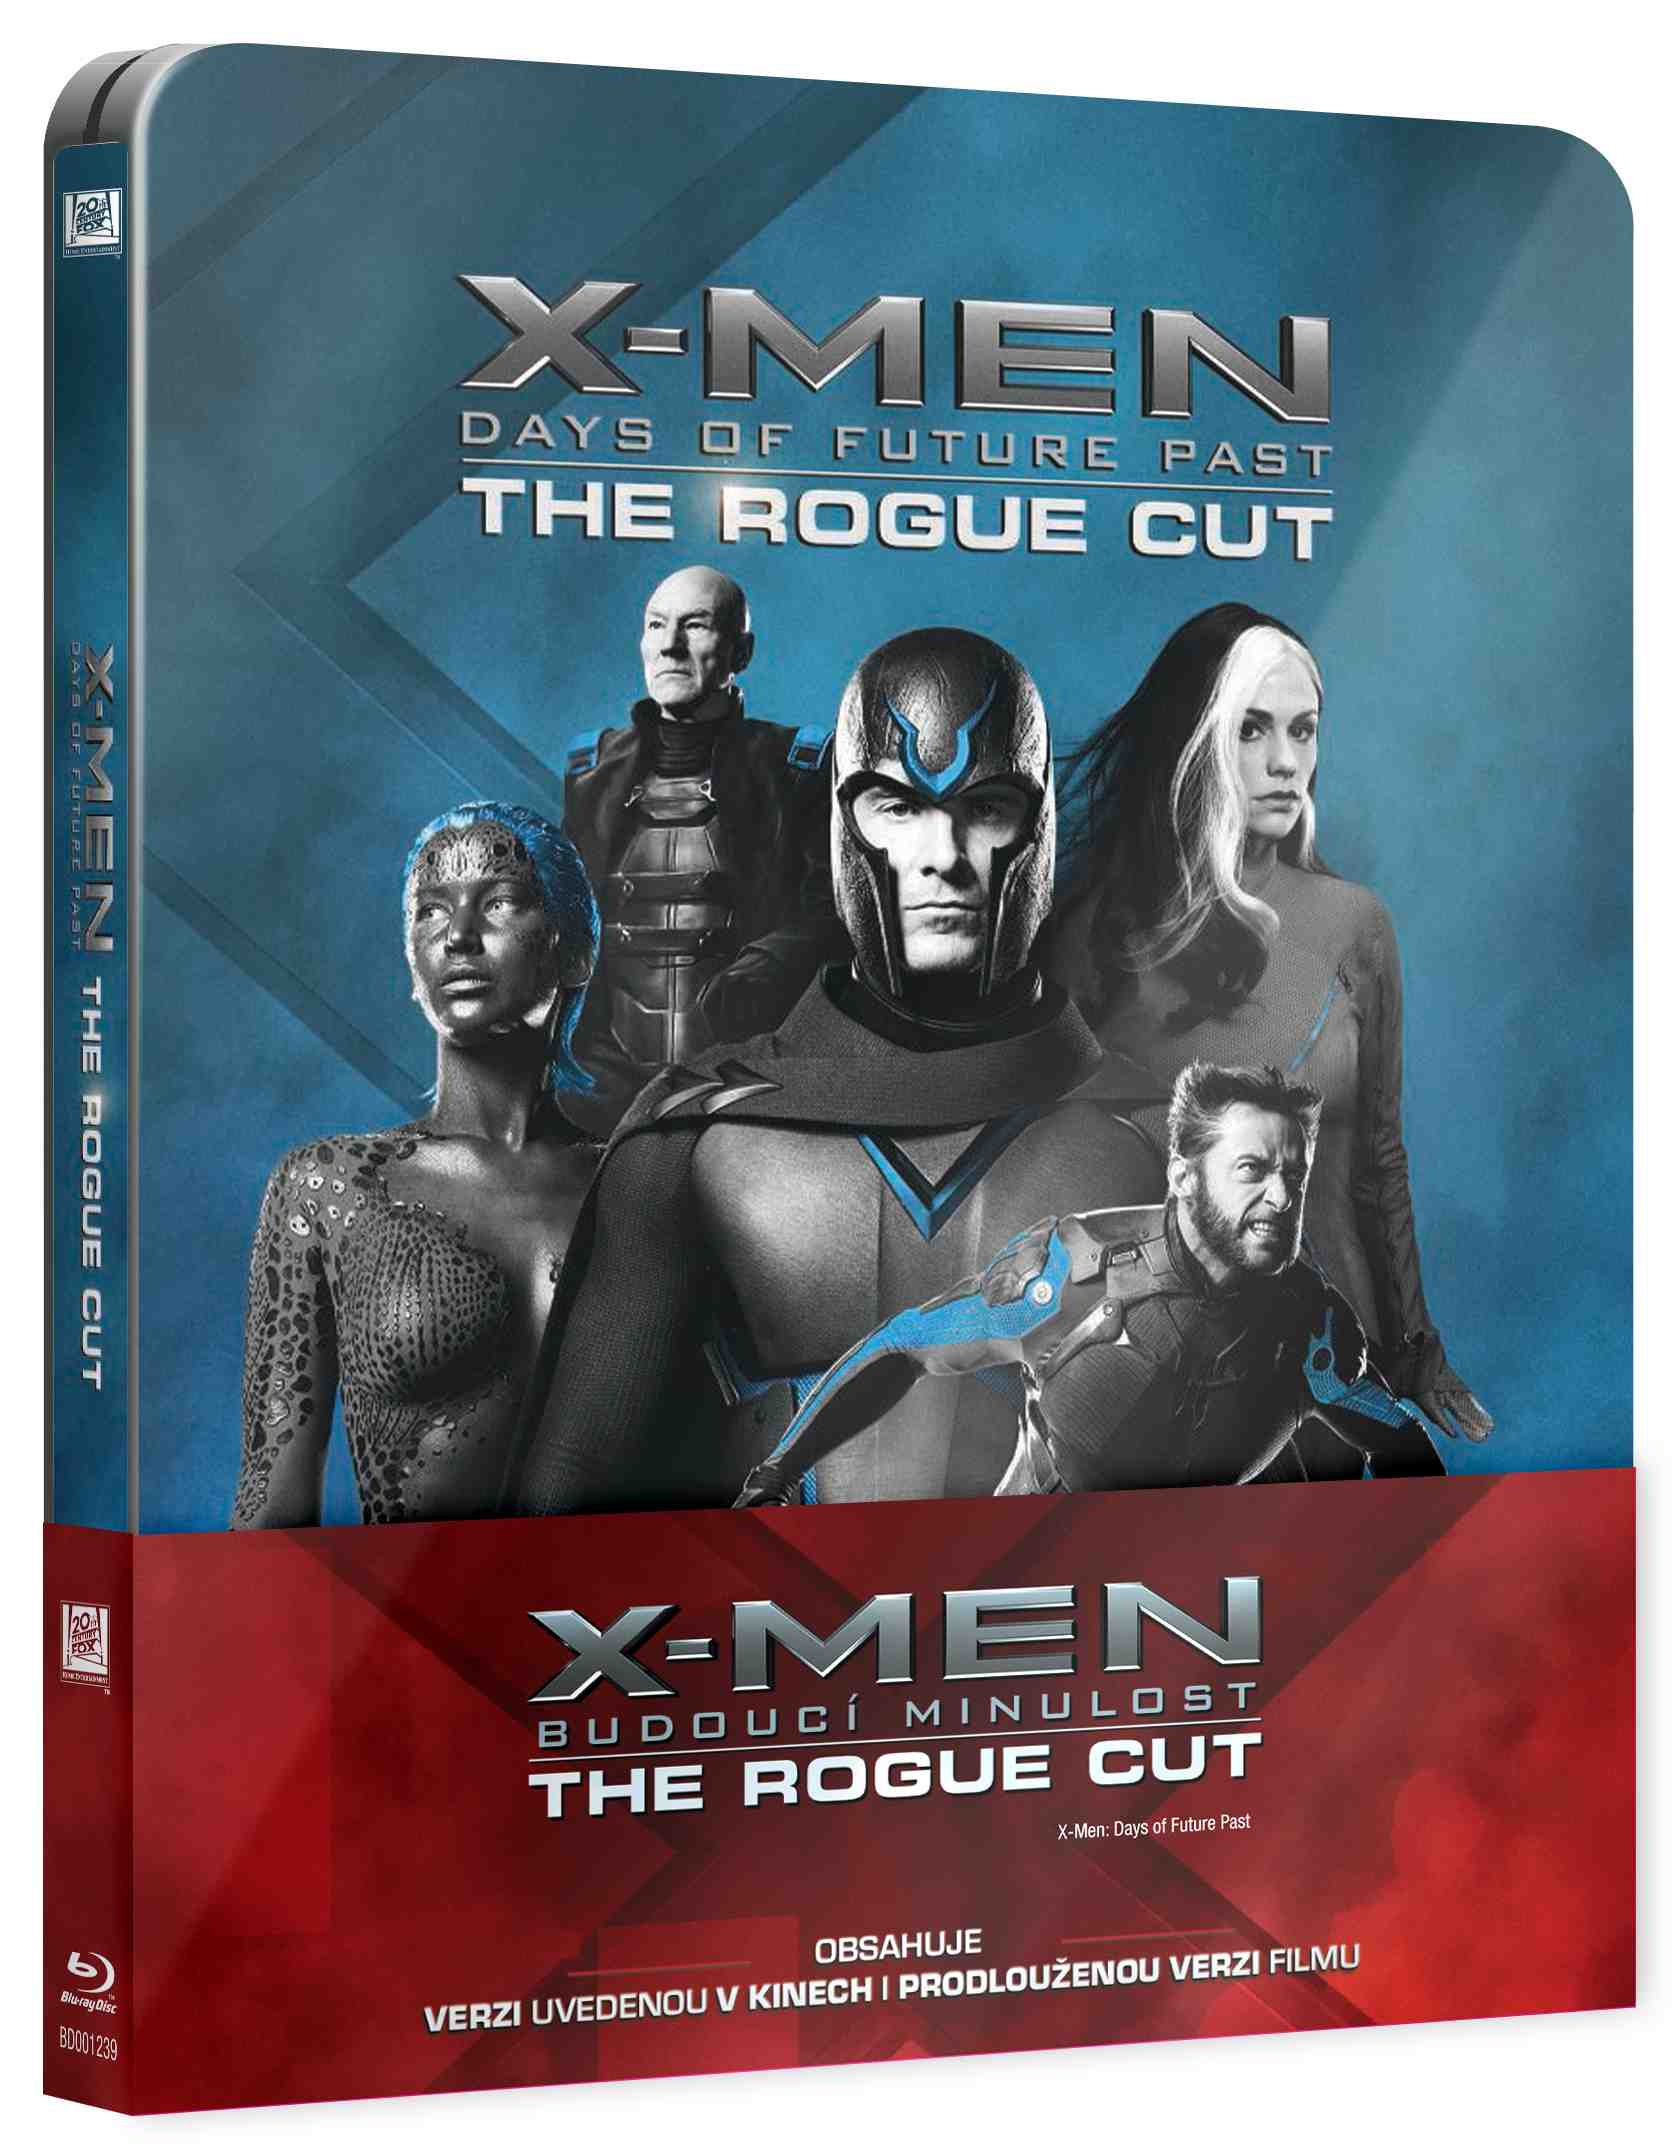 X-MEN: BUDOUCÍ MINULOST (The Rogue Cut) - Blu-ray STEELBOOK